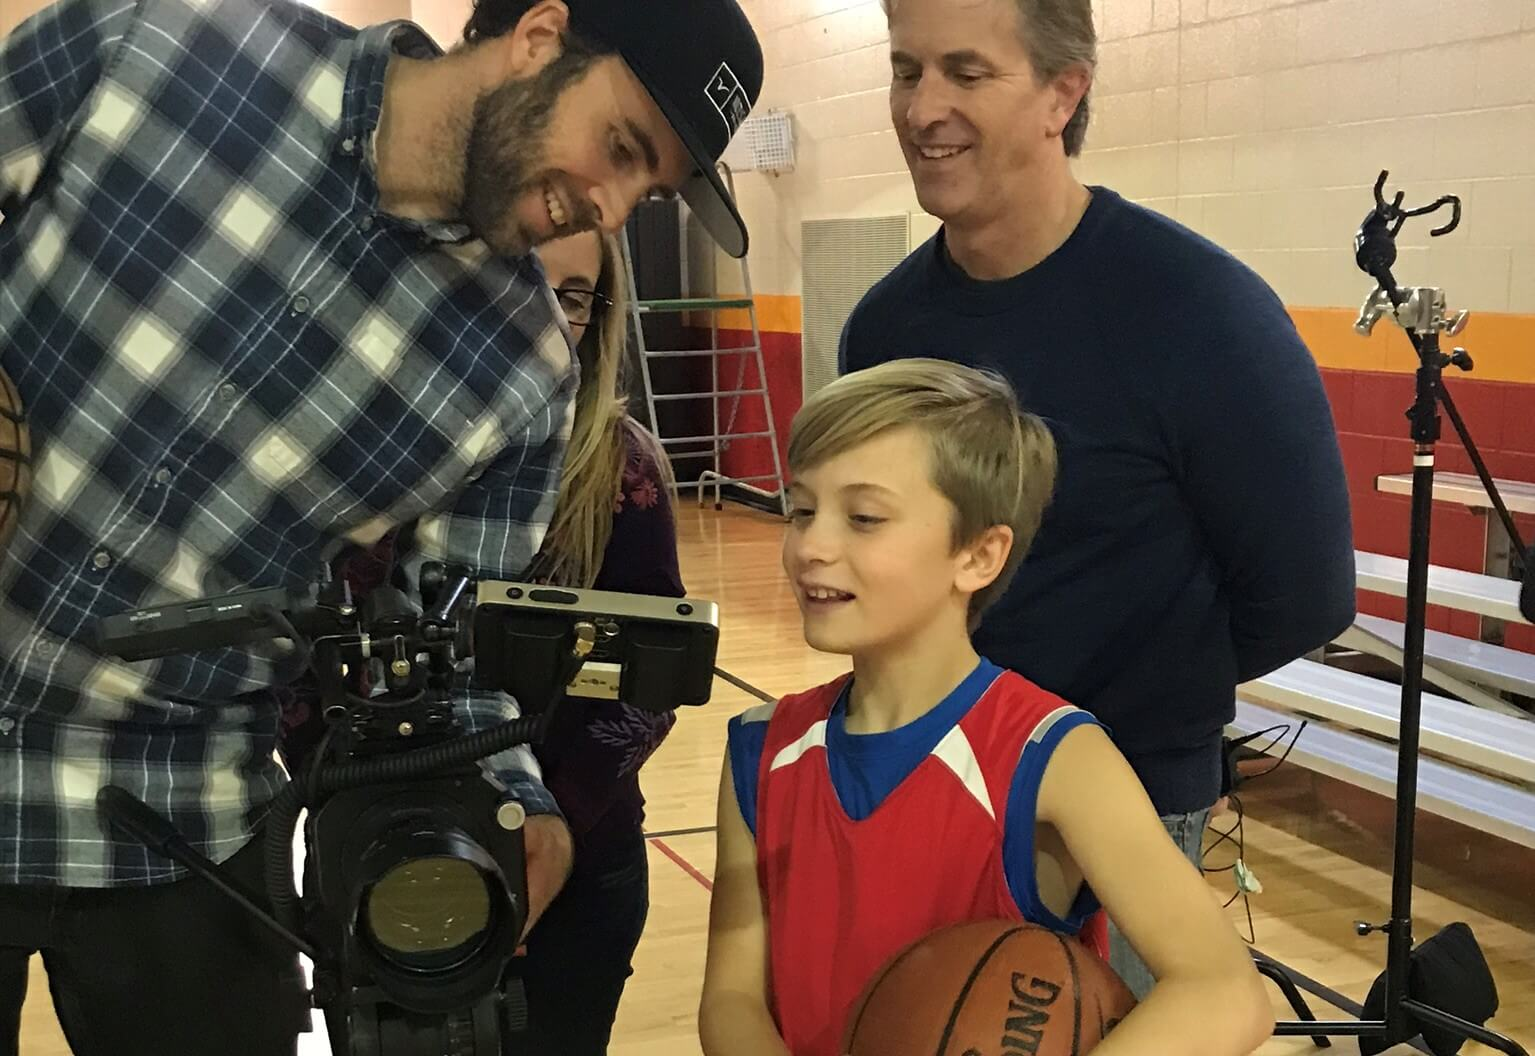 Don't Spoil the Fun! New Video Series from YMCA of Greater Brandywine Aims to Help Kids Stay in Sports